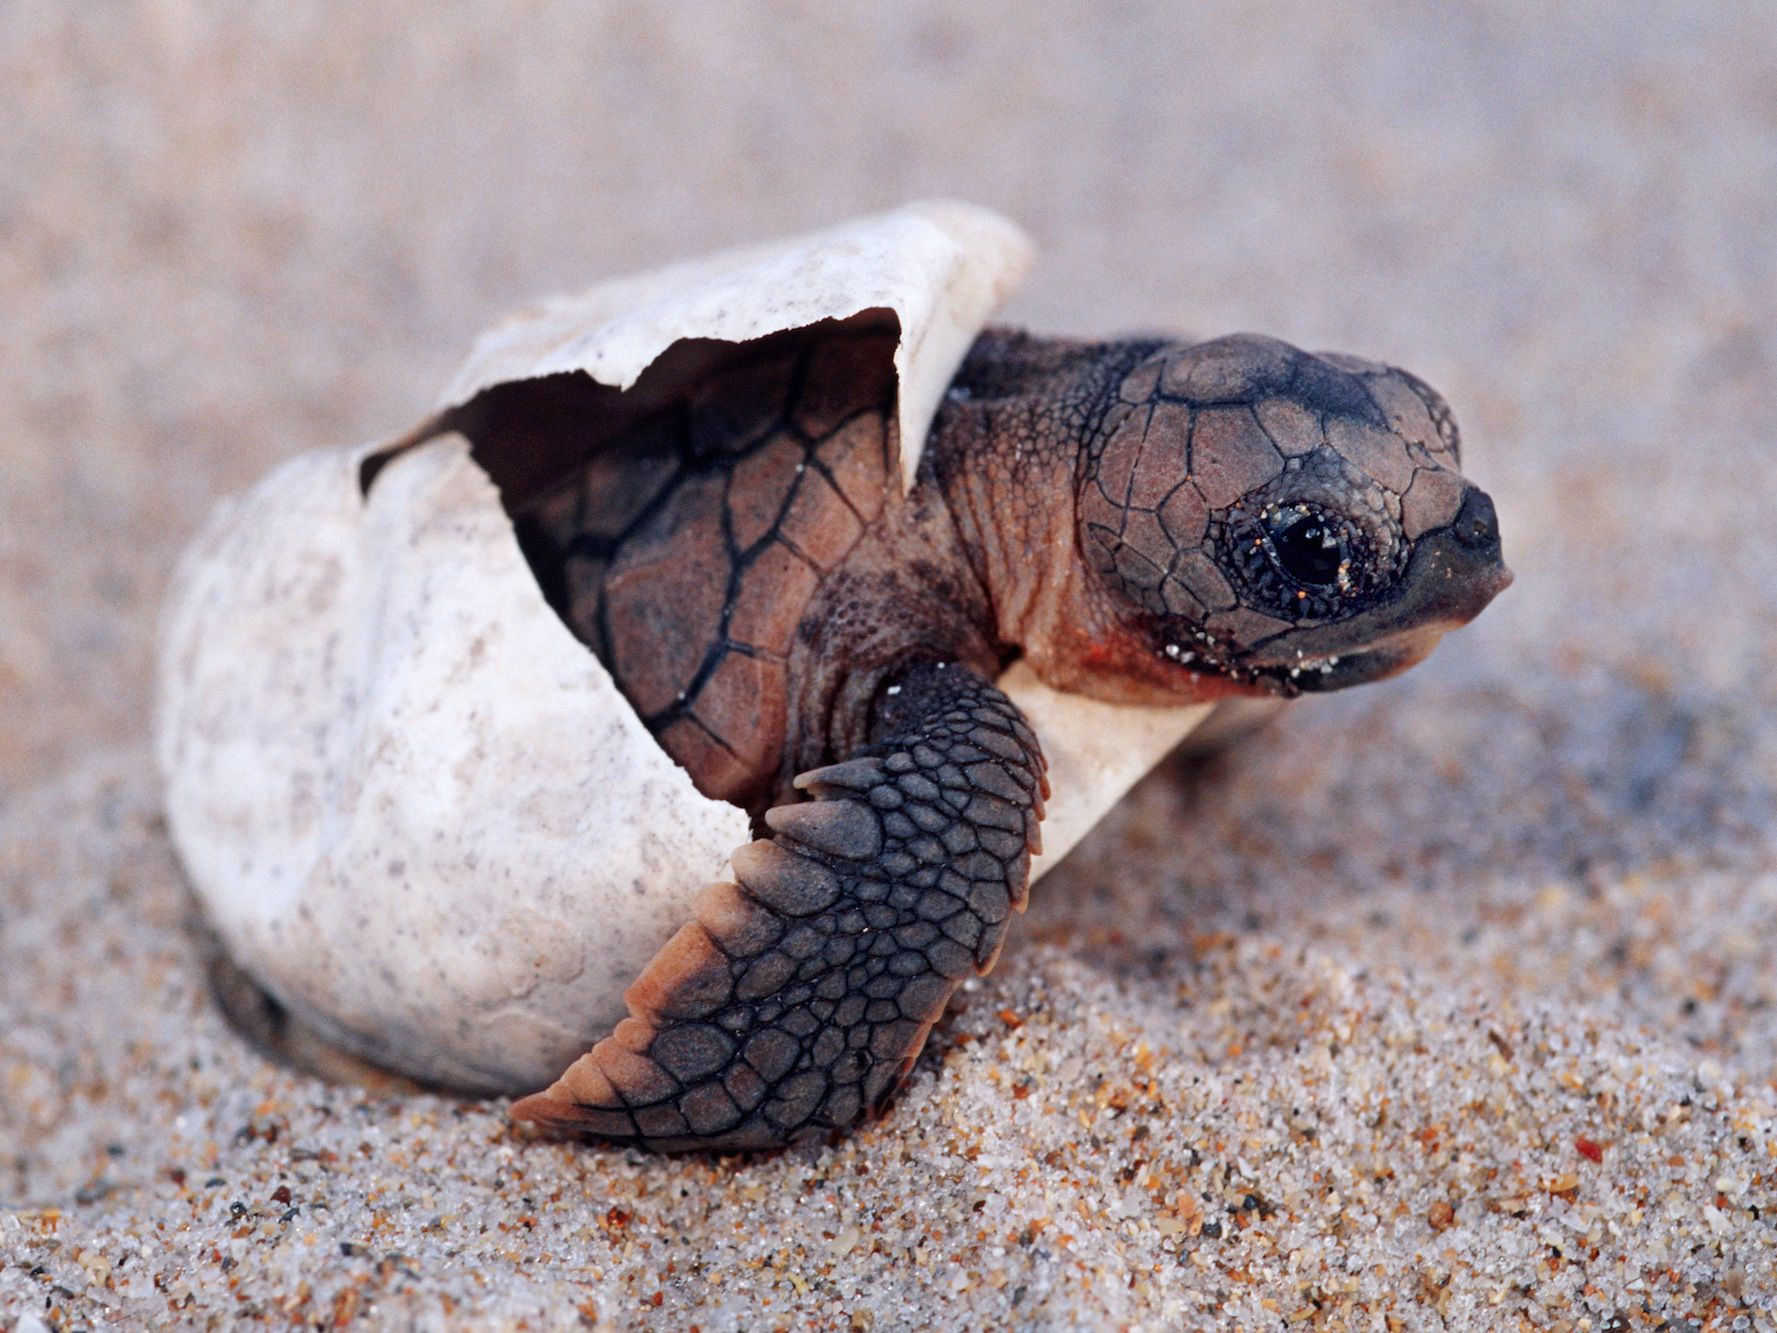 The Illegal Sale Of Turtle Hatchlings In The Us